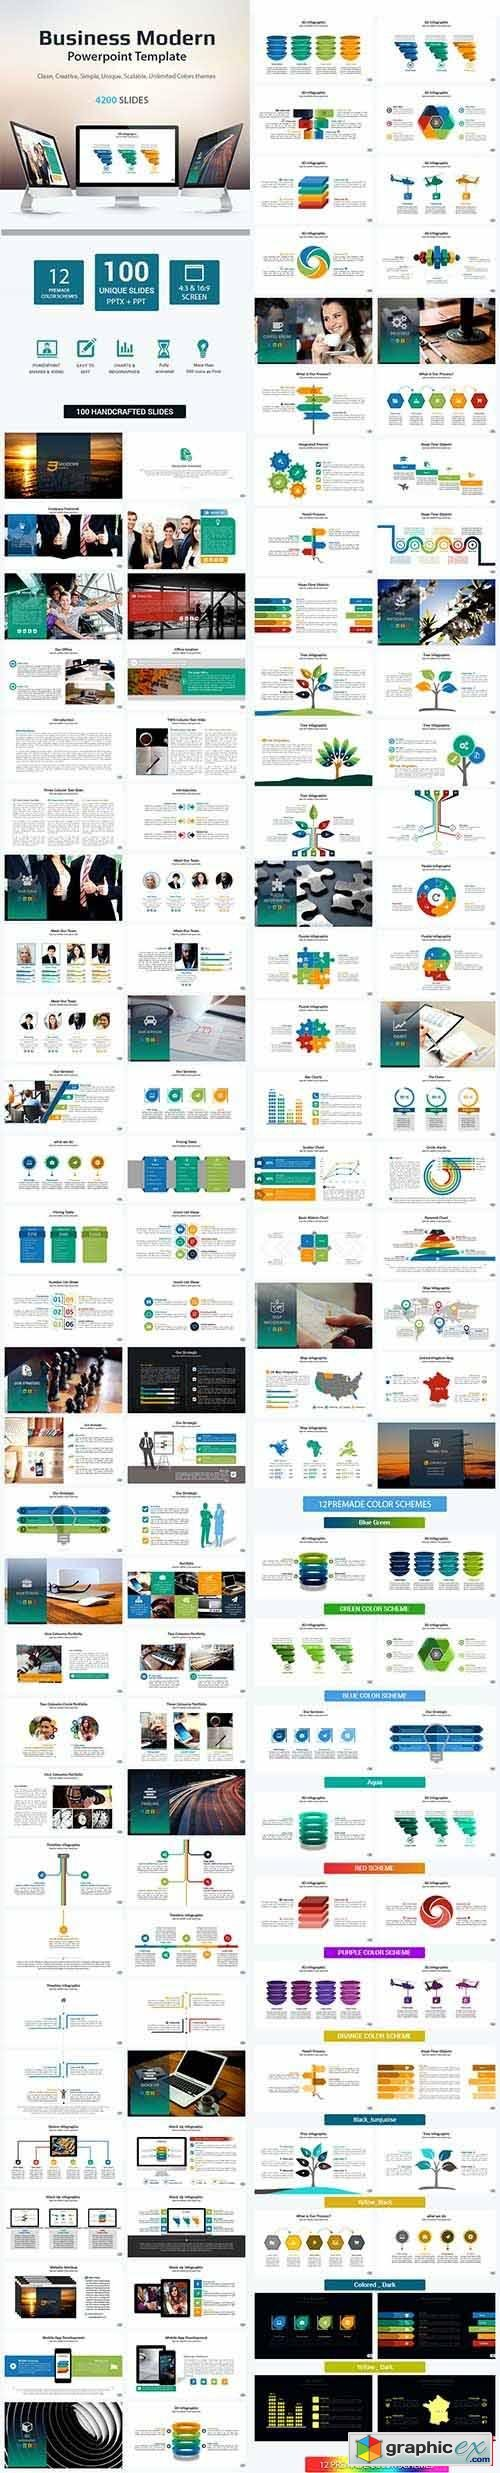 Business Modern Presentation Template